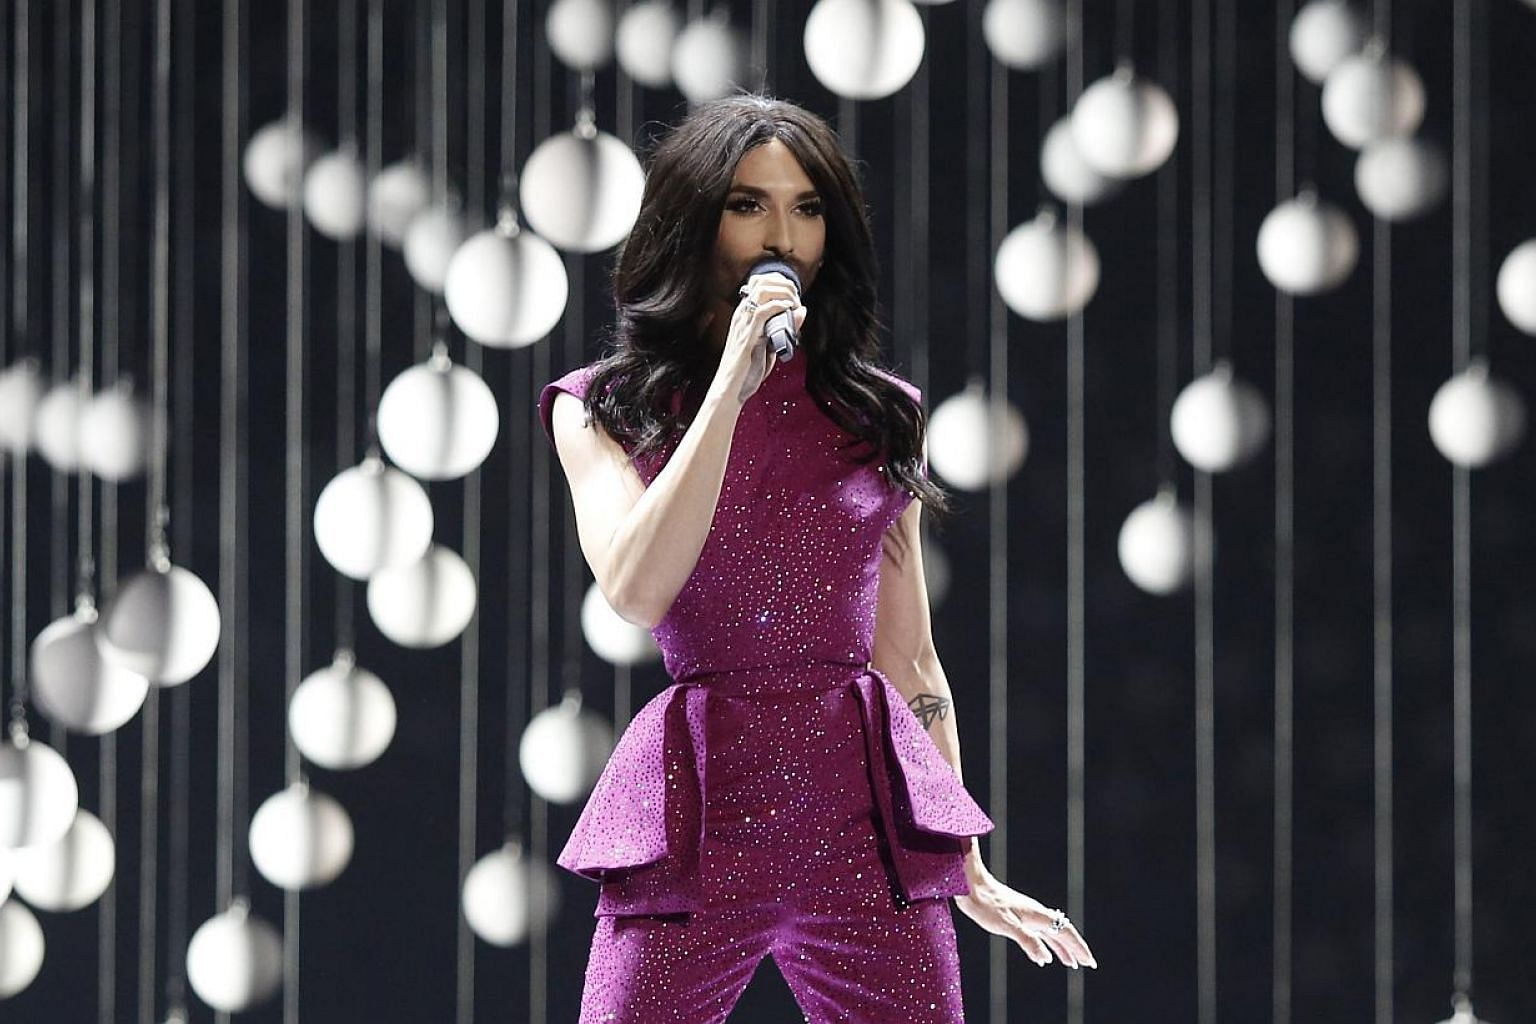 Last year's winner, Conchita Wurst from Austria, performs during the Eurovision Song Contest final on May 23, 2015 in Vienna. -- PHOTO: AFP